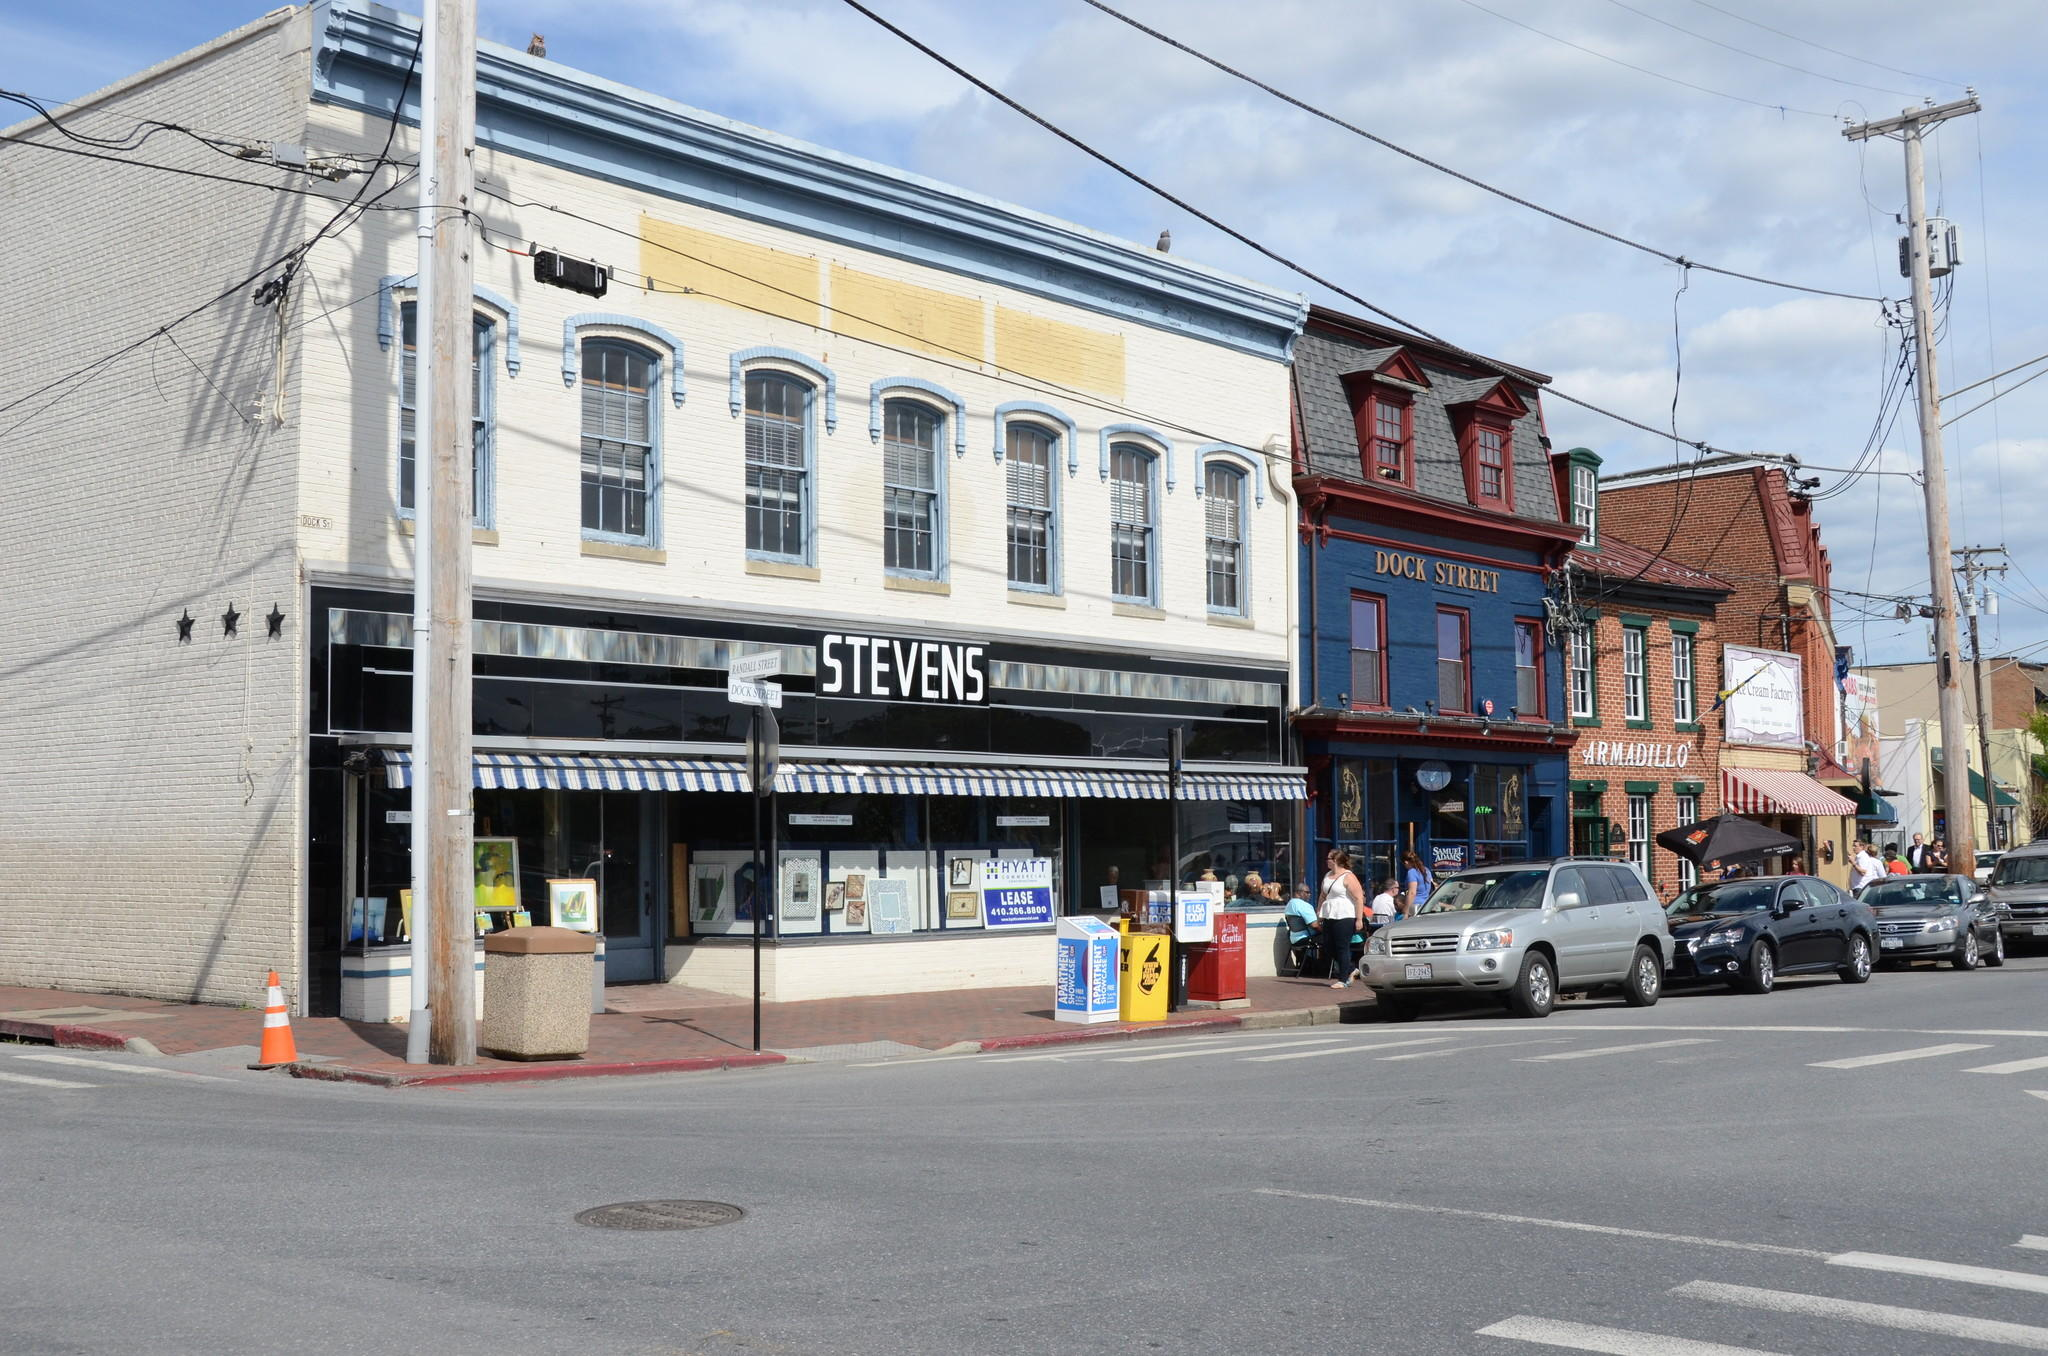 City officials say the vacant Stevens Hardware building in Annapolis is being eyed by Royal Farms, but may face a challenge because of zoning that bars convenience stores. The company contends a new location there would qualify as a deli.